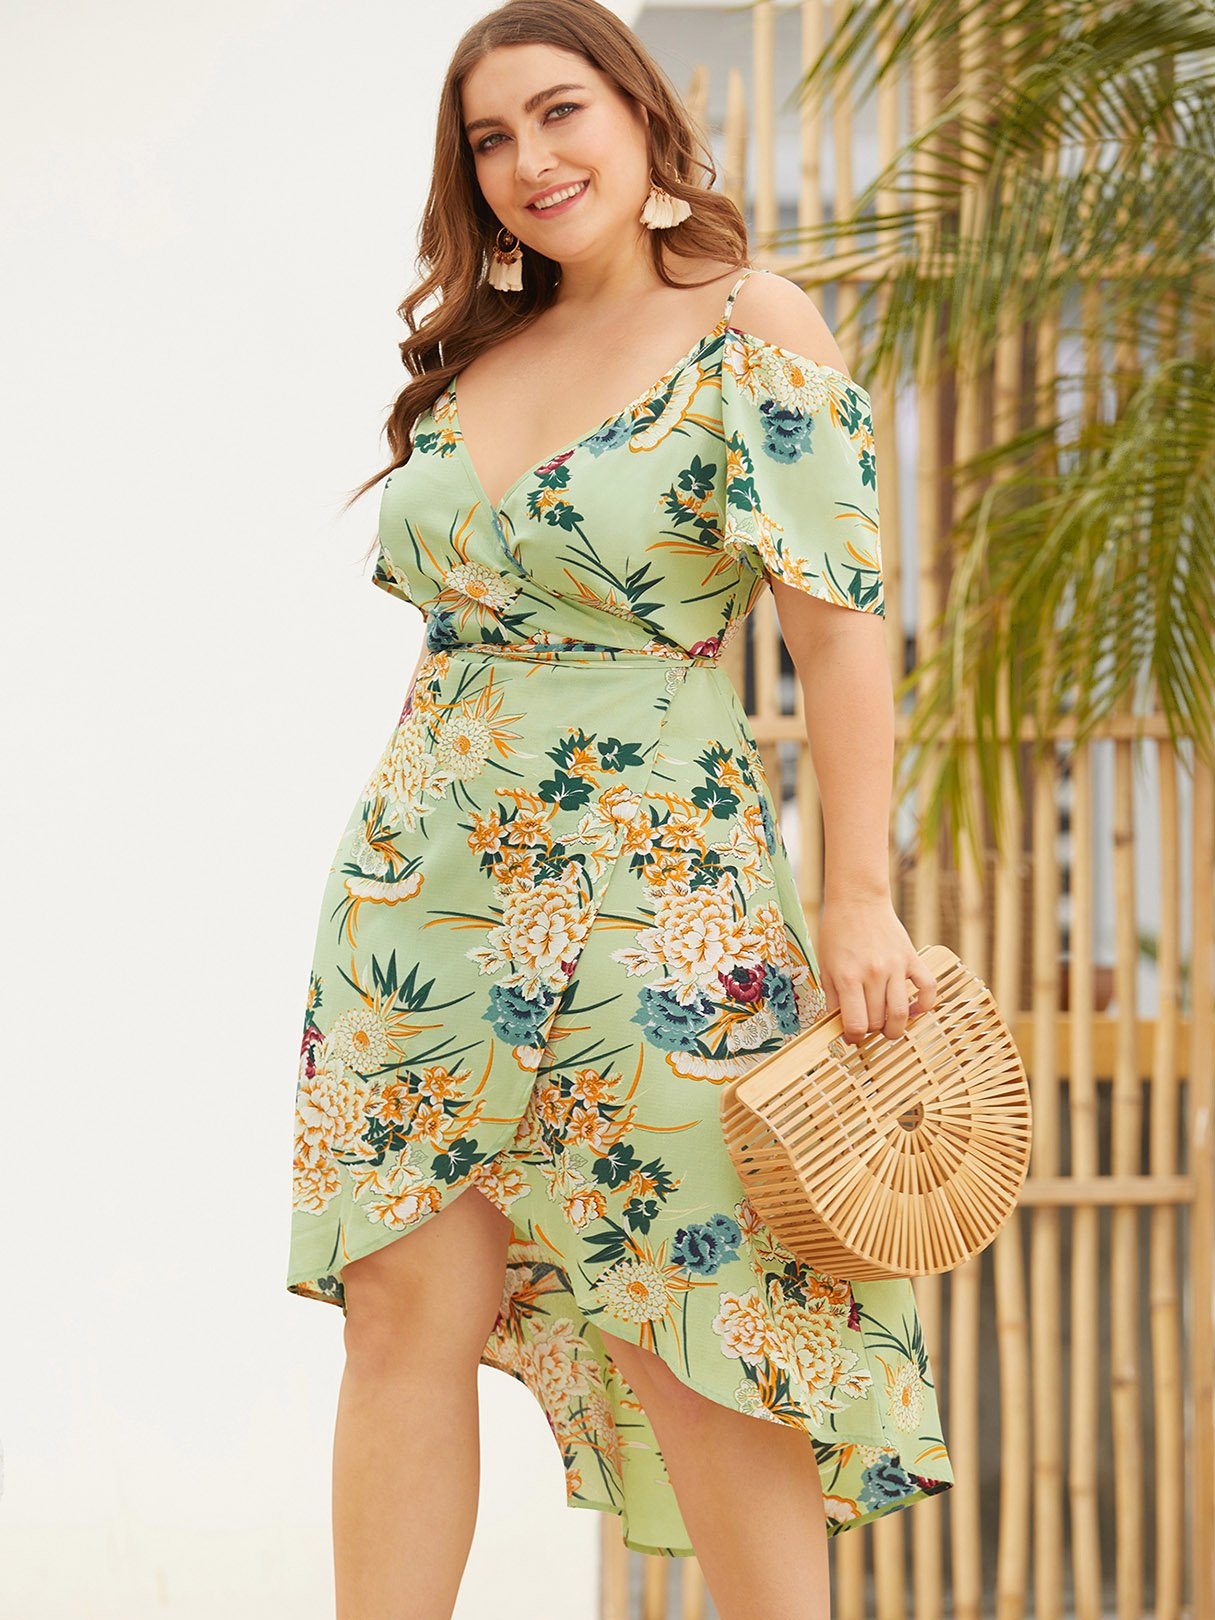 Plus Size Dresses